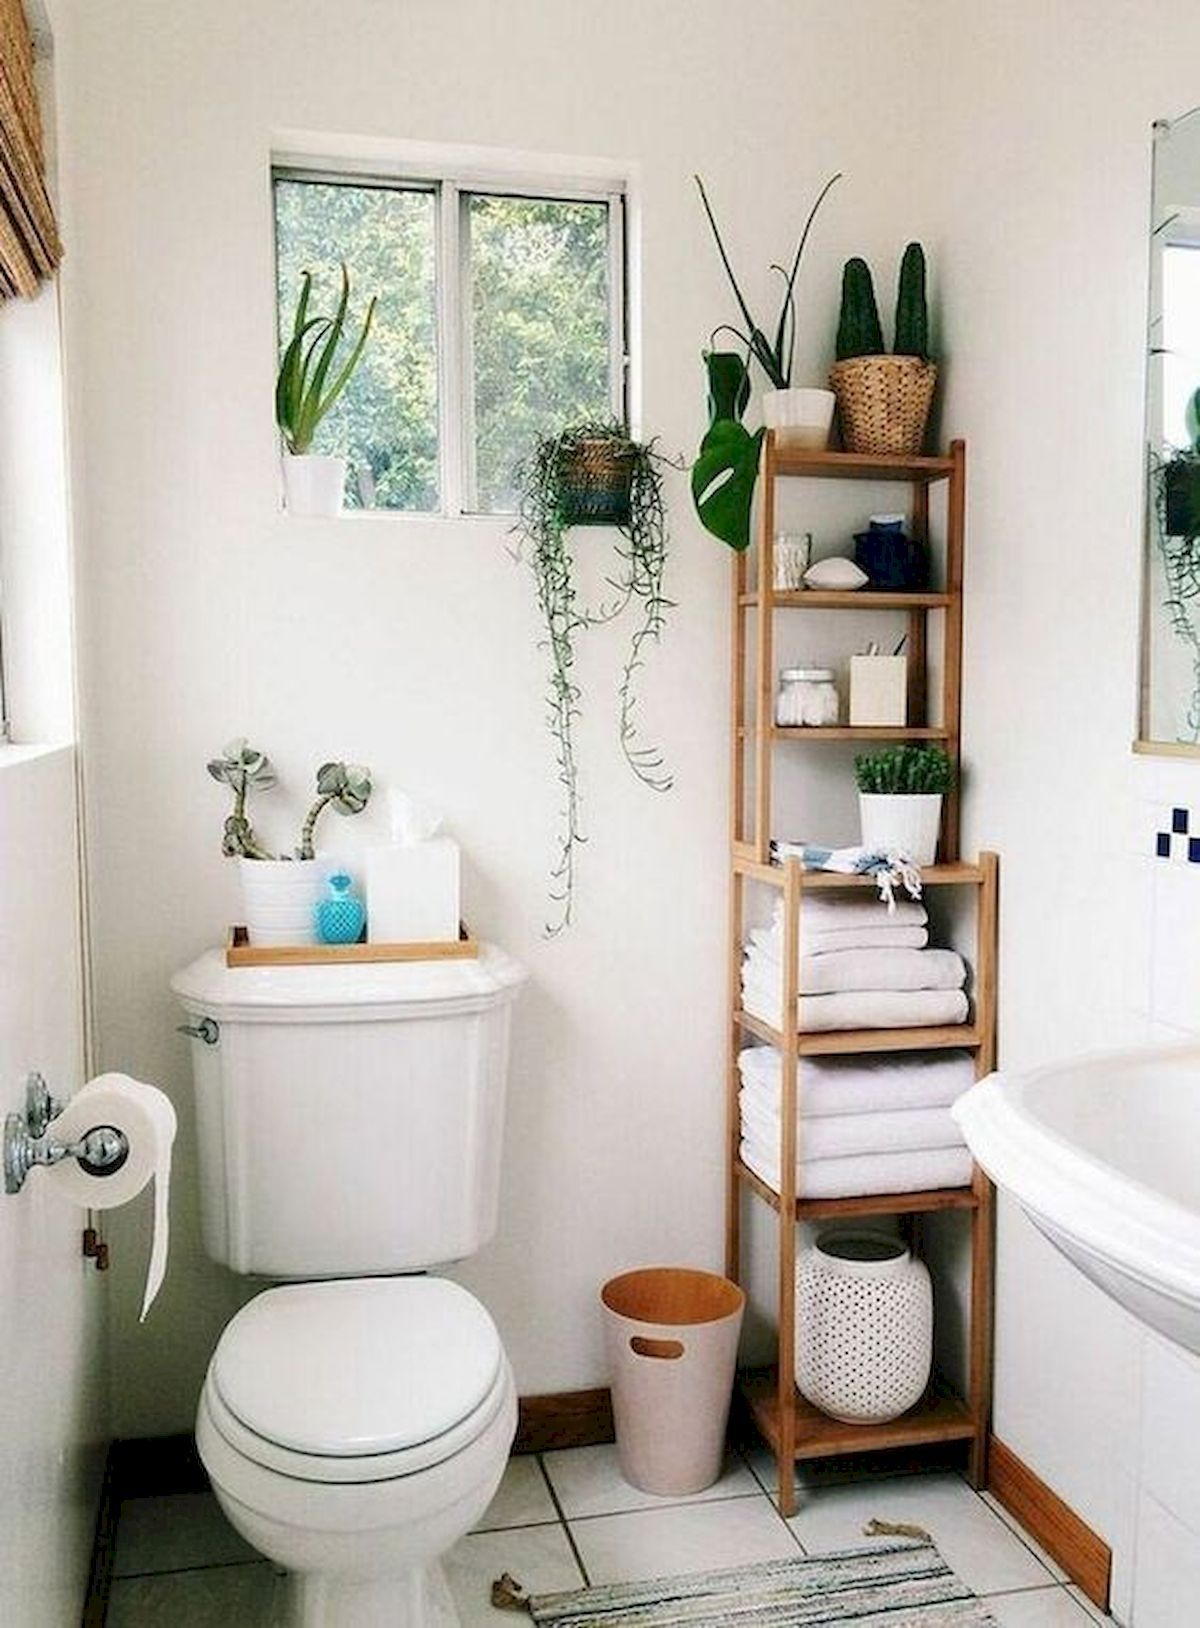 Awesome 50 Cozy Bathroom Design Ideas for Small Space in ... on Small Apartment Bathroom Storage Ideas  id=89410